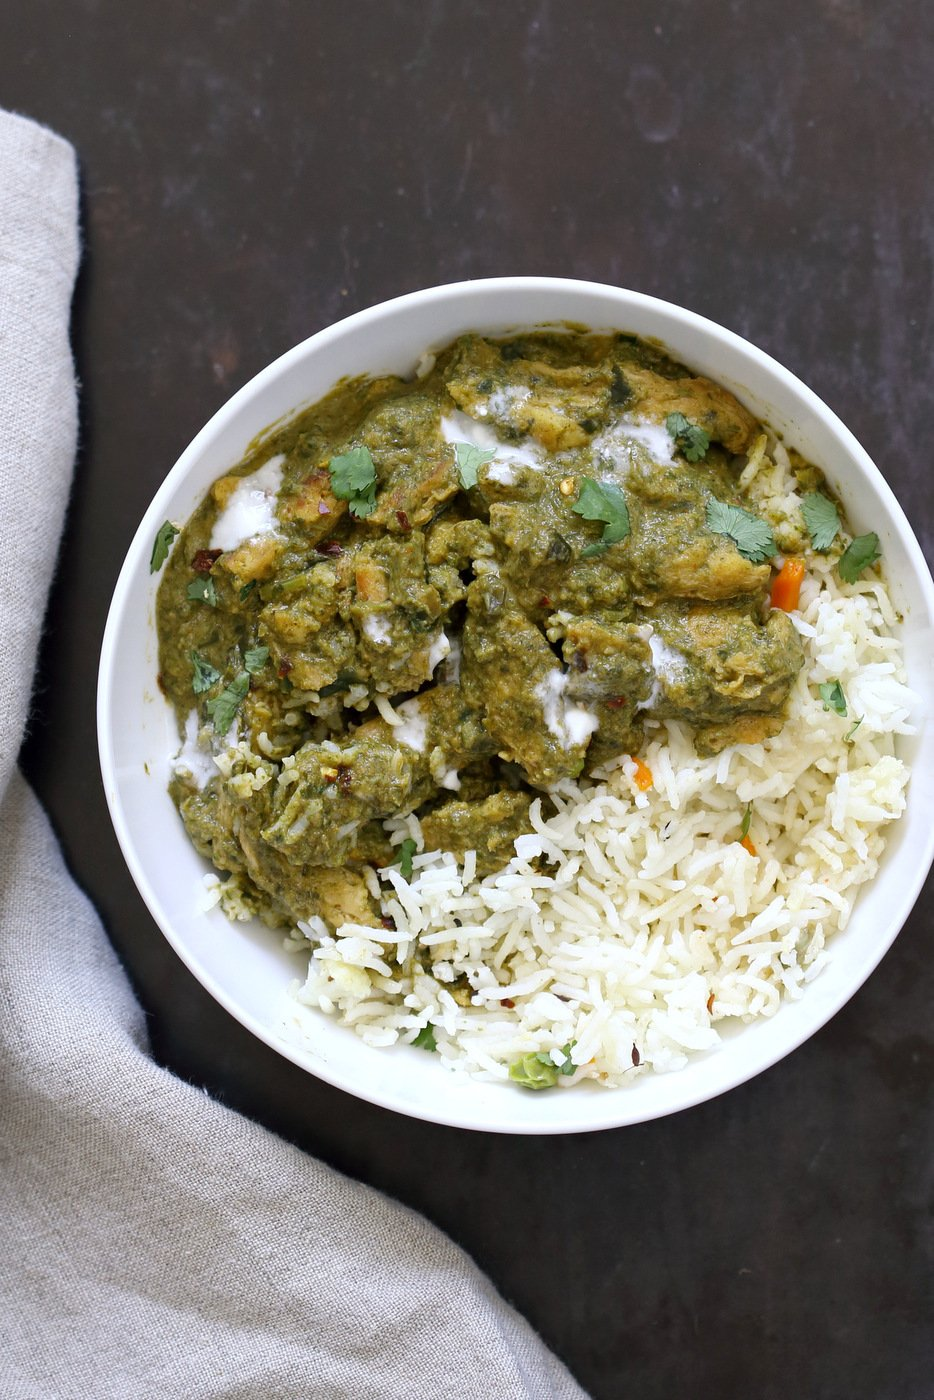 Instant Pot Vegan Chicken Saag with Soy Curls. Use seitan, tempeh, baked tofu, chickpeas or chikin substitutes for variation. 1 Pot Soy curls in Spinach Sauce. #Vegan #Glutenfree #Recipe Can be Soy-free and Nut-free #veganricha | VeganRicha.com